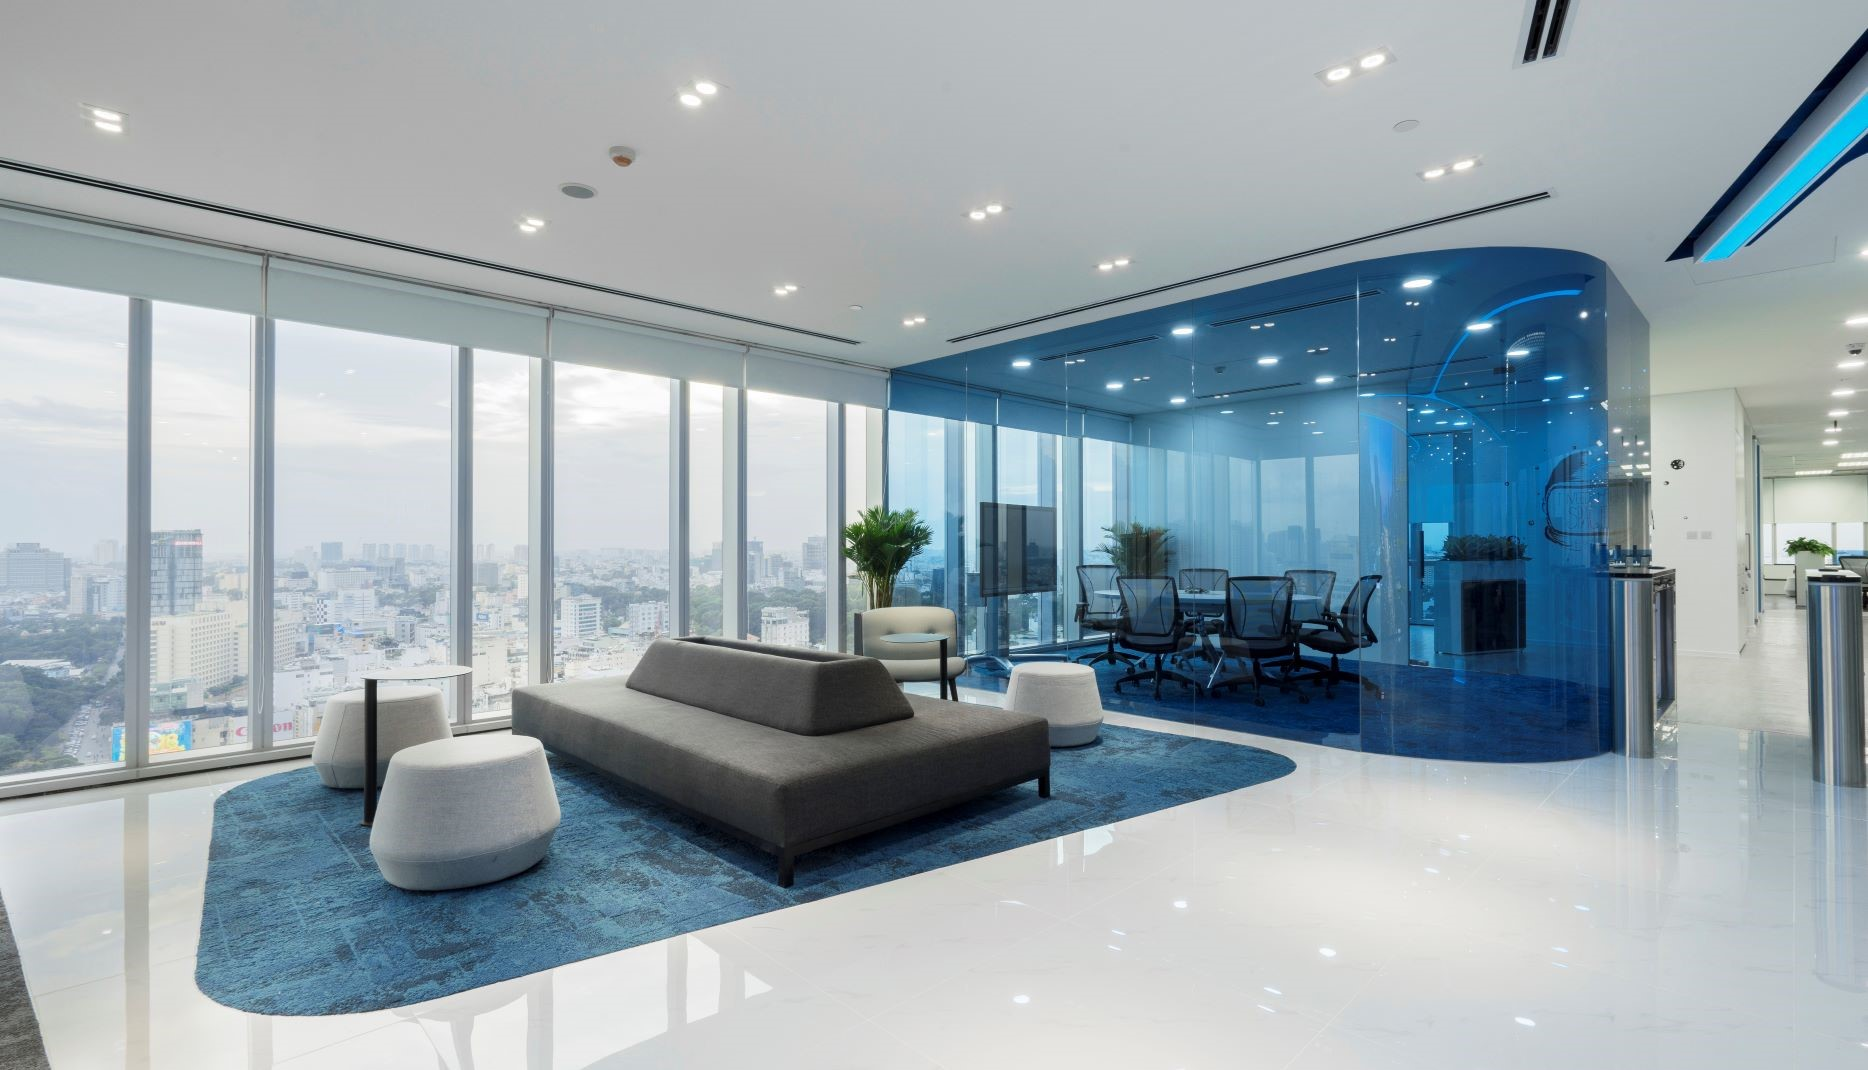 A spacious lobby with blue carpet and transparent glass wall of the meeting room